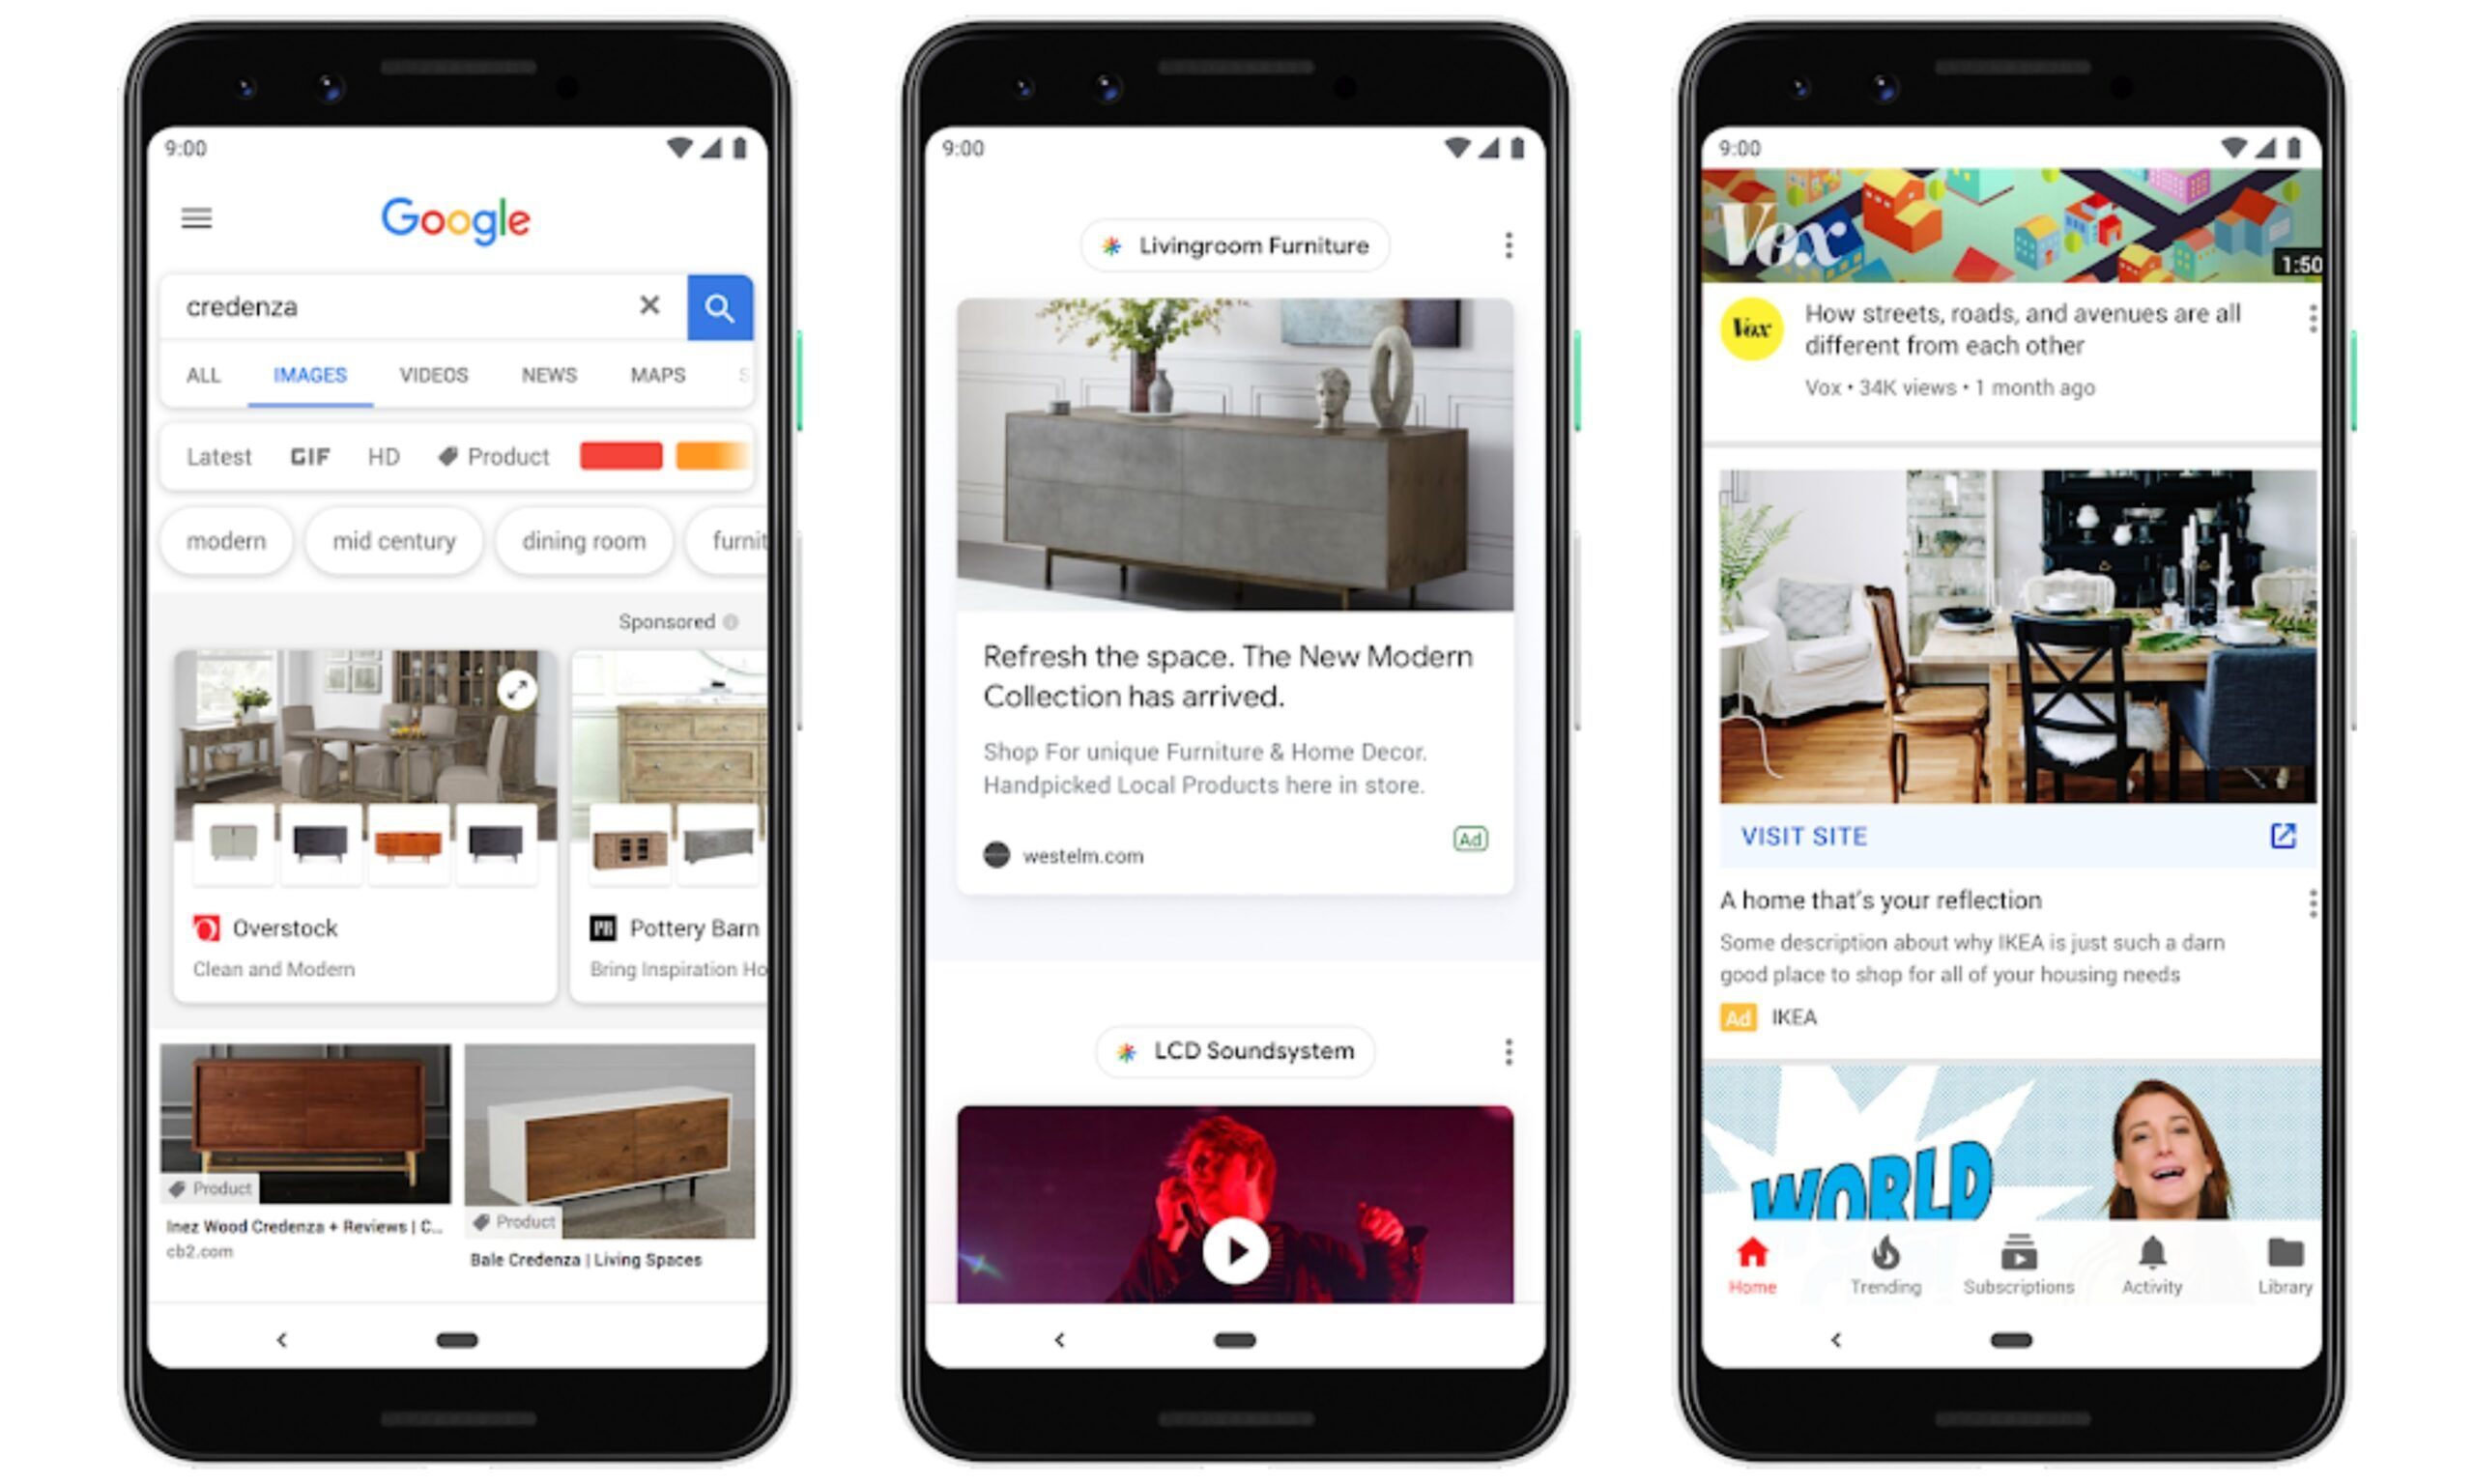 iphone-displaying-google-discovery-ads